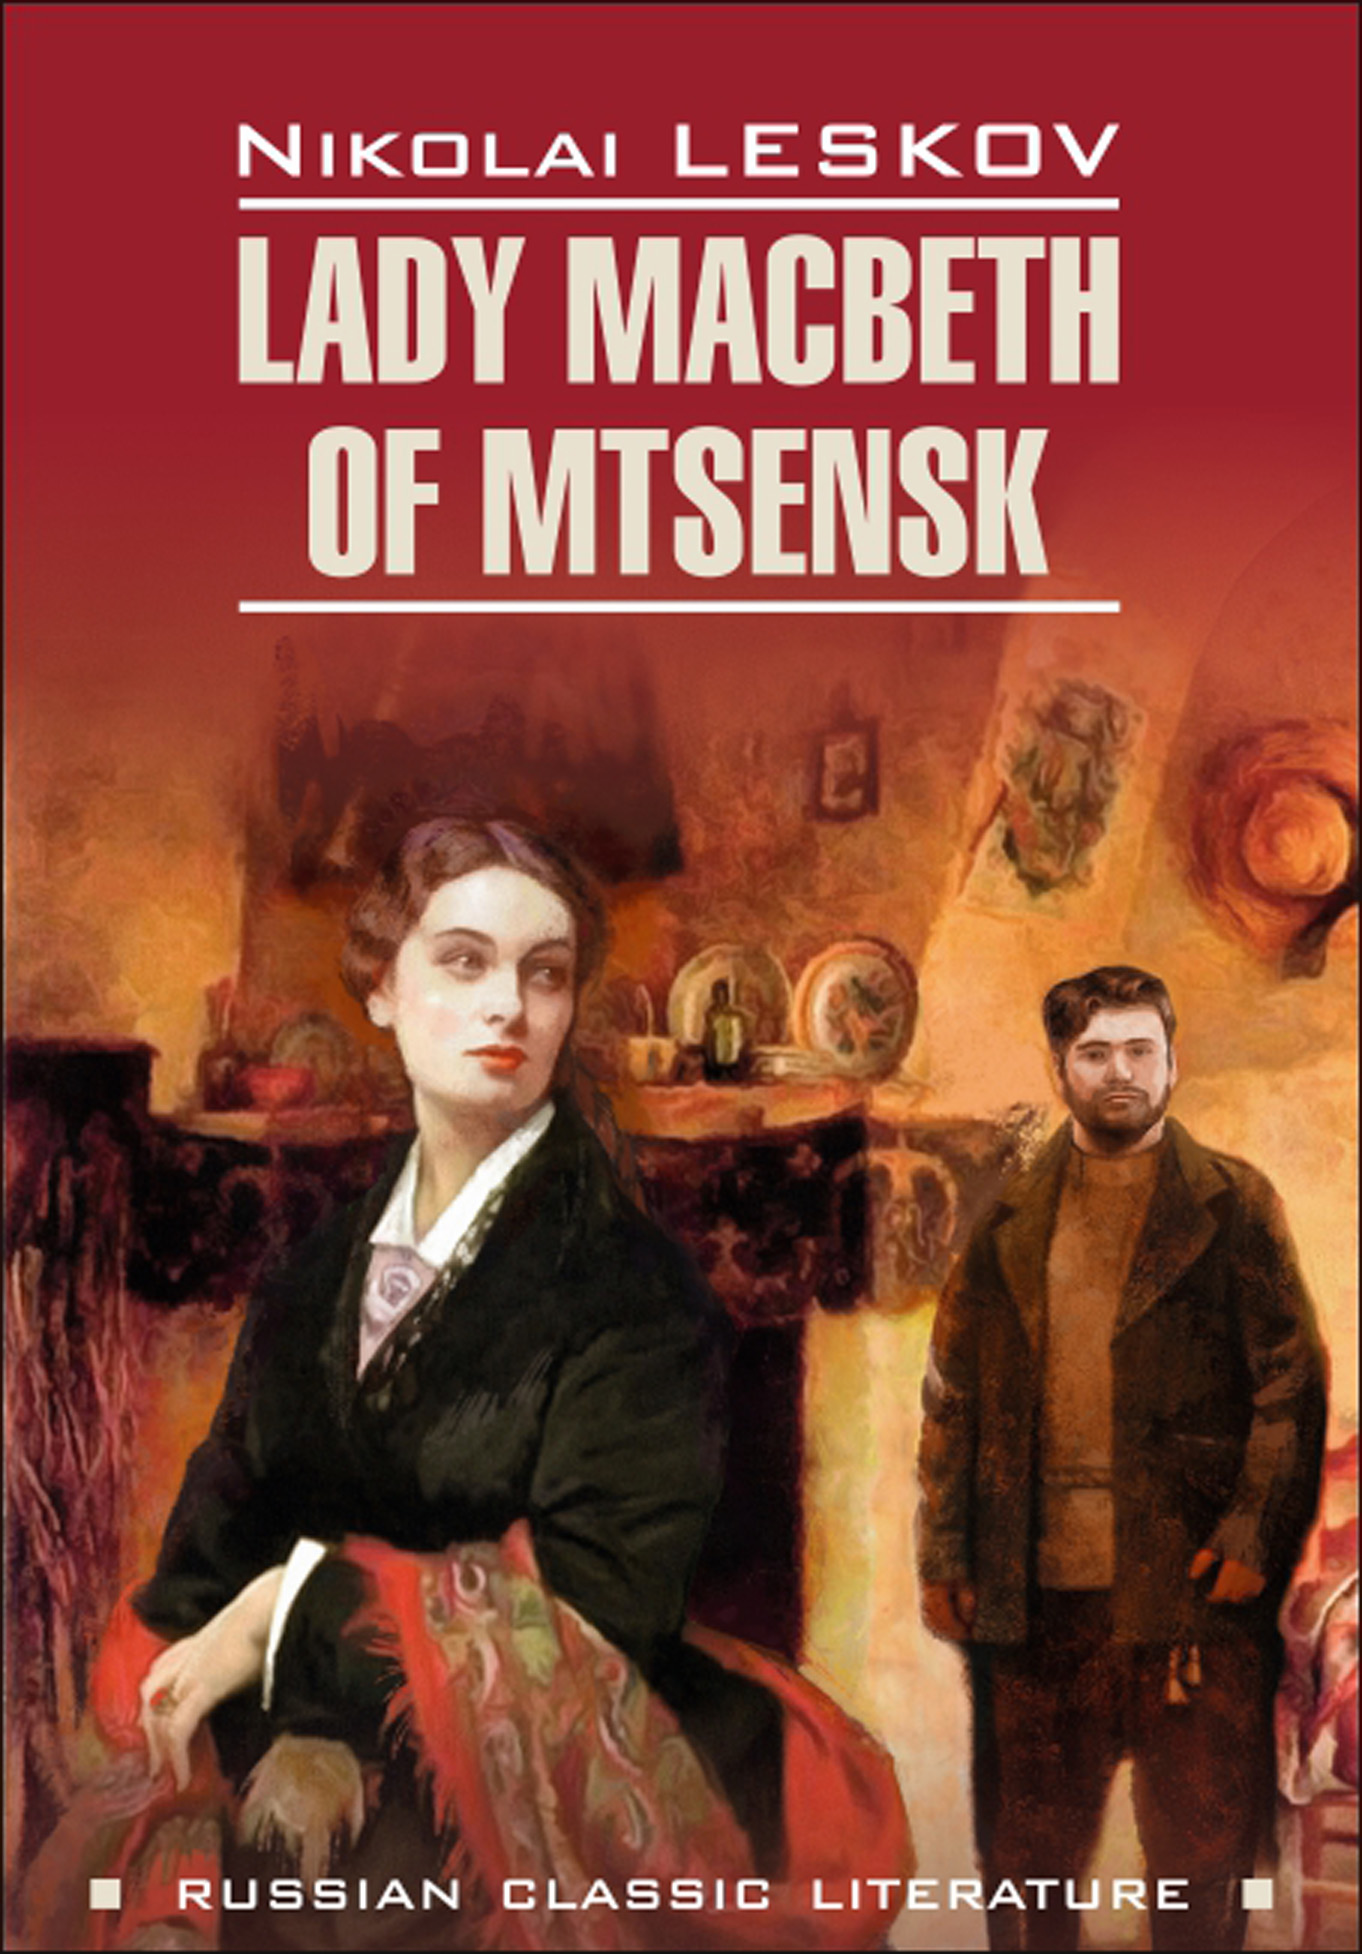 Lady Macbeth of Mtsensk and Other Stories / Леди Макбет Мценского уезда и другие повести. Книга для чтения на английском языке